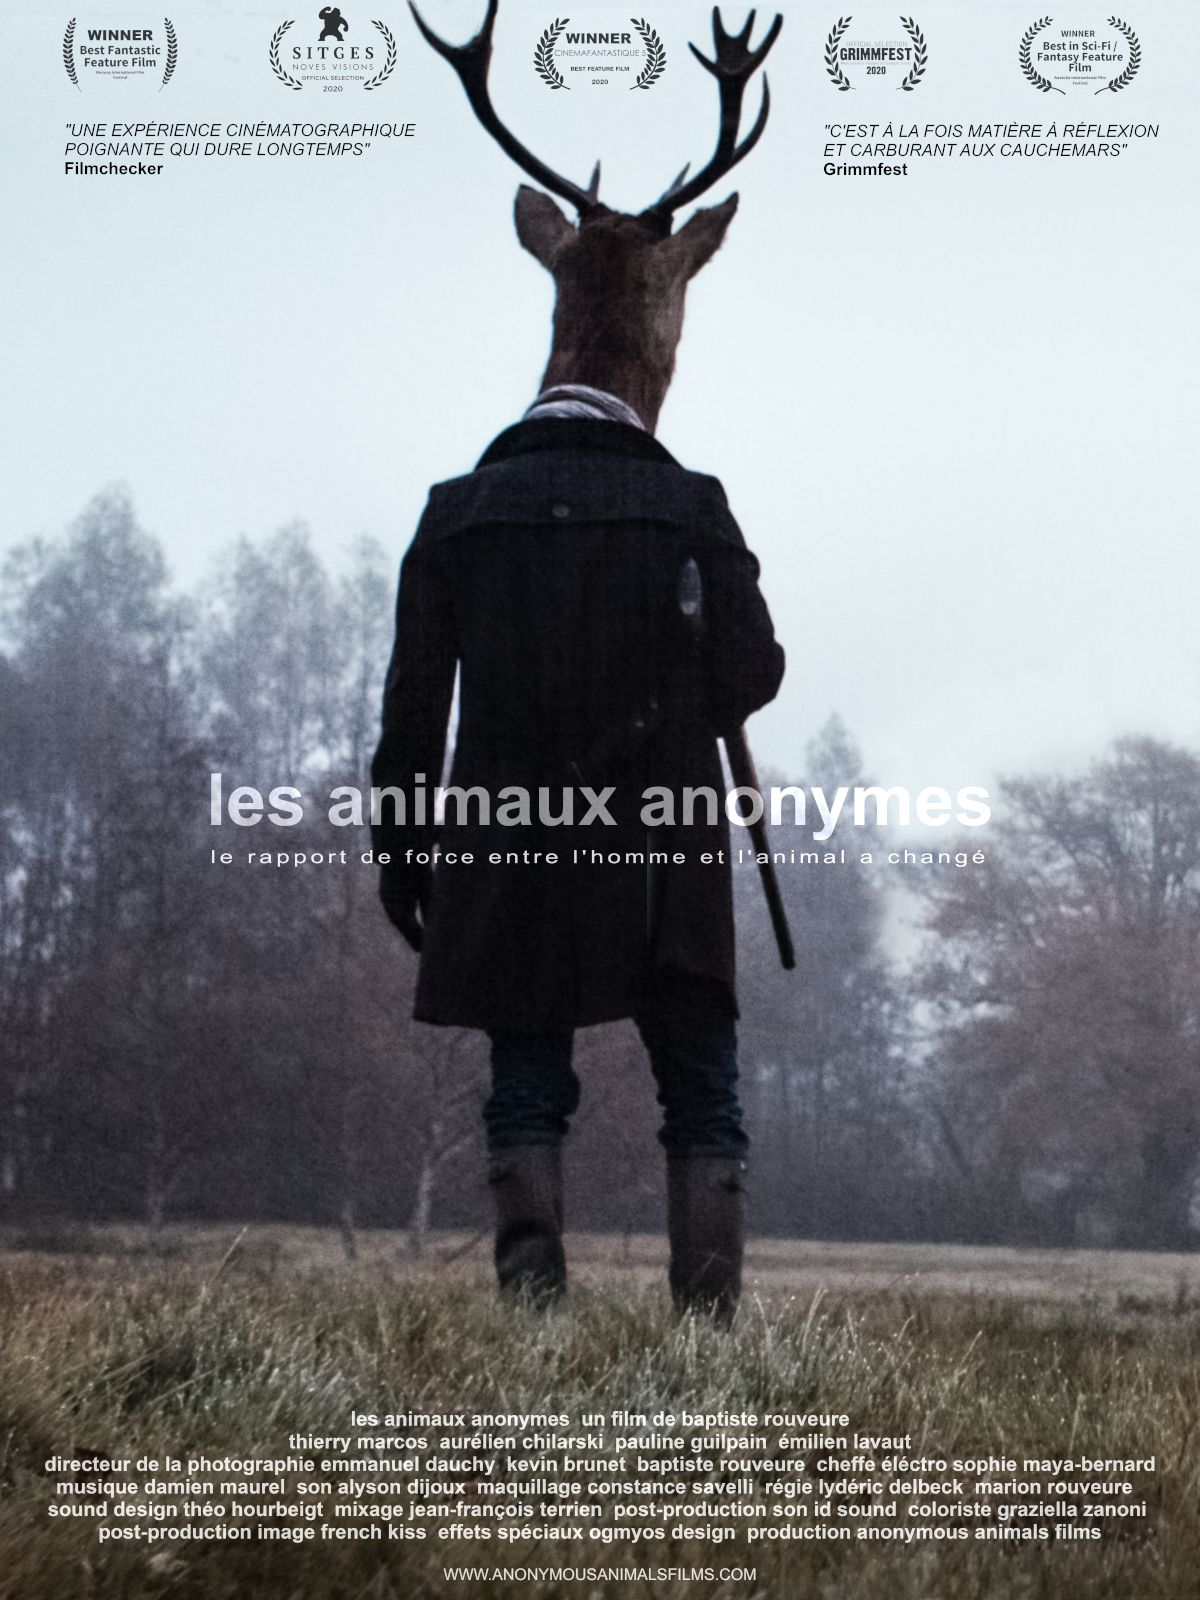 Les Animaux anonymes - Film (2021) streaming VF gratuit complet